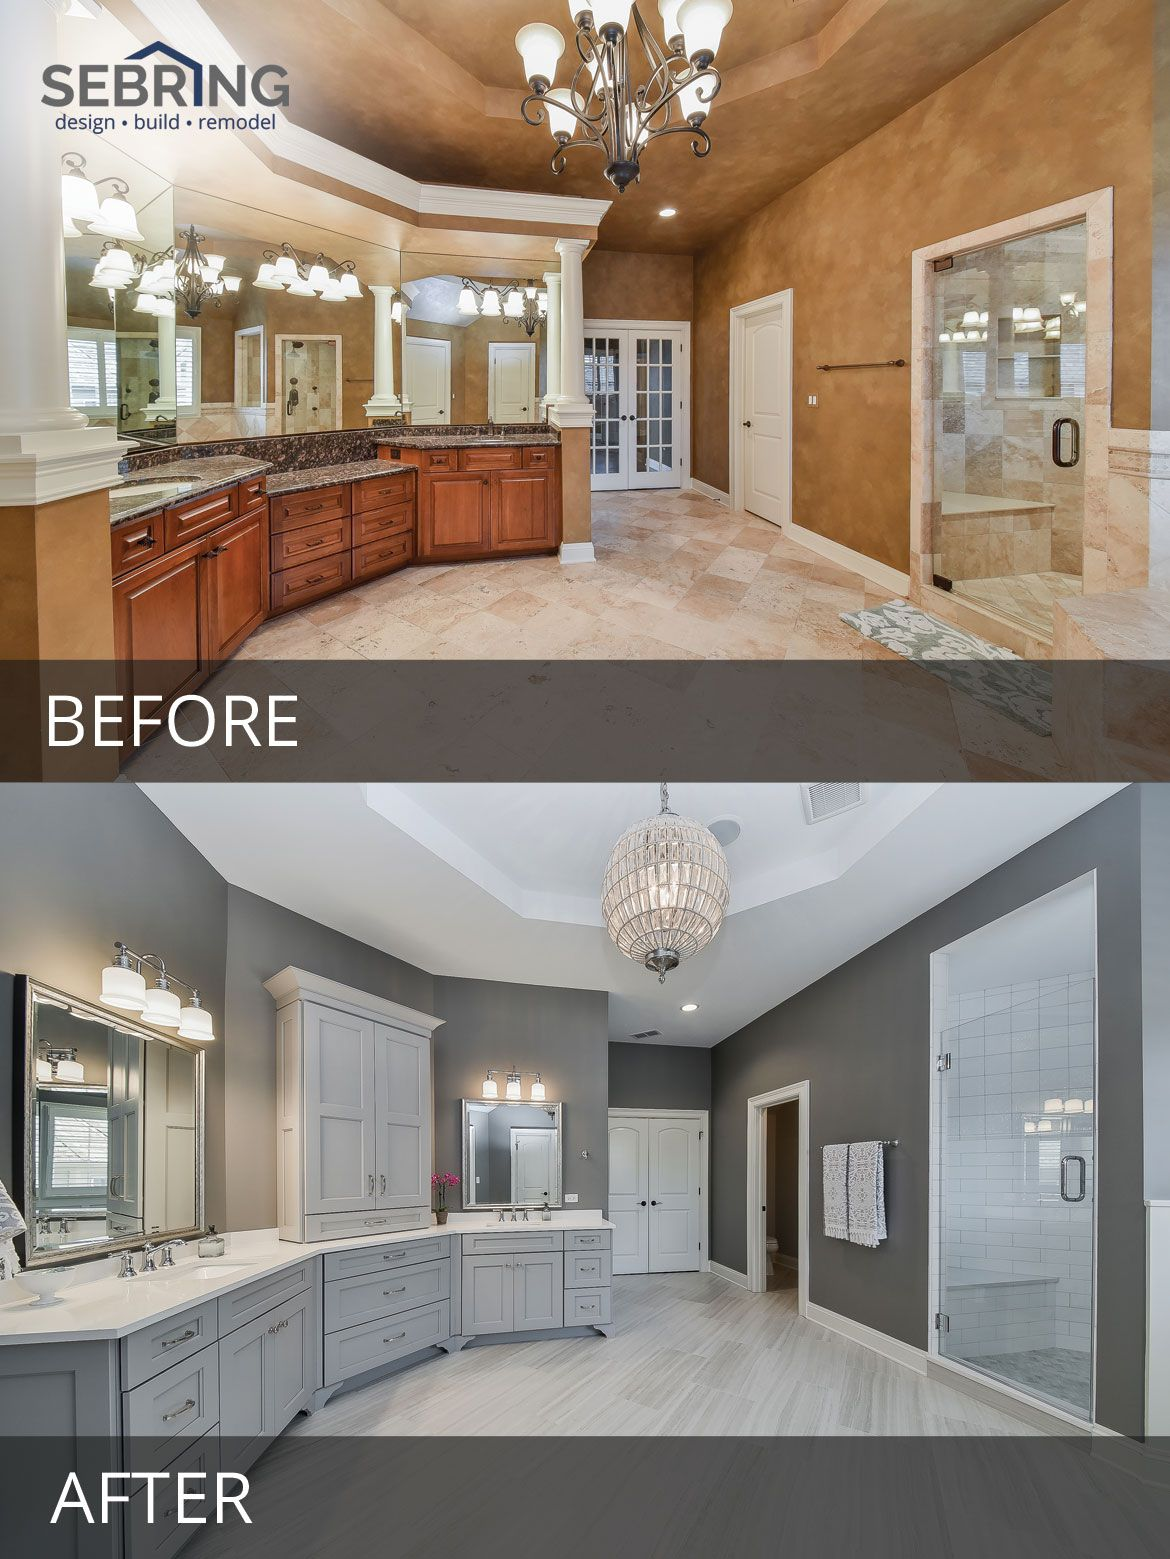 rob michelle s whole house before after pictures in 2019 the rh pinterest com